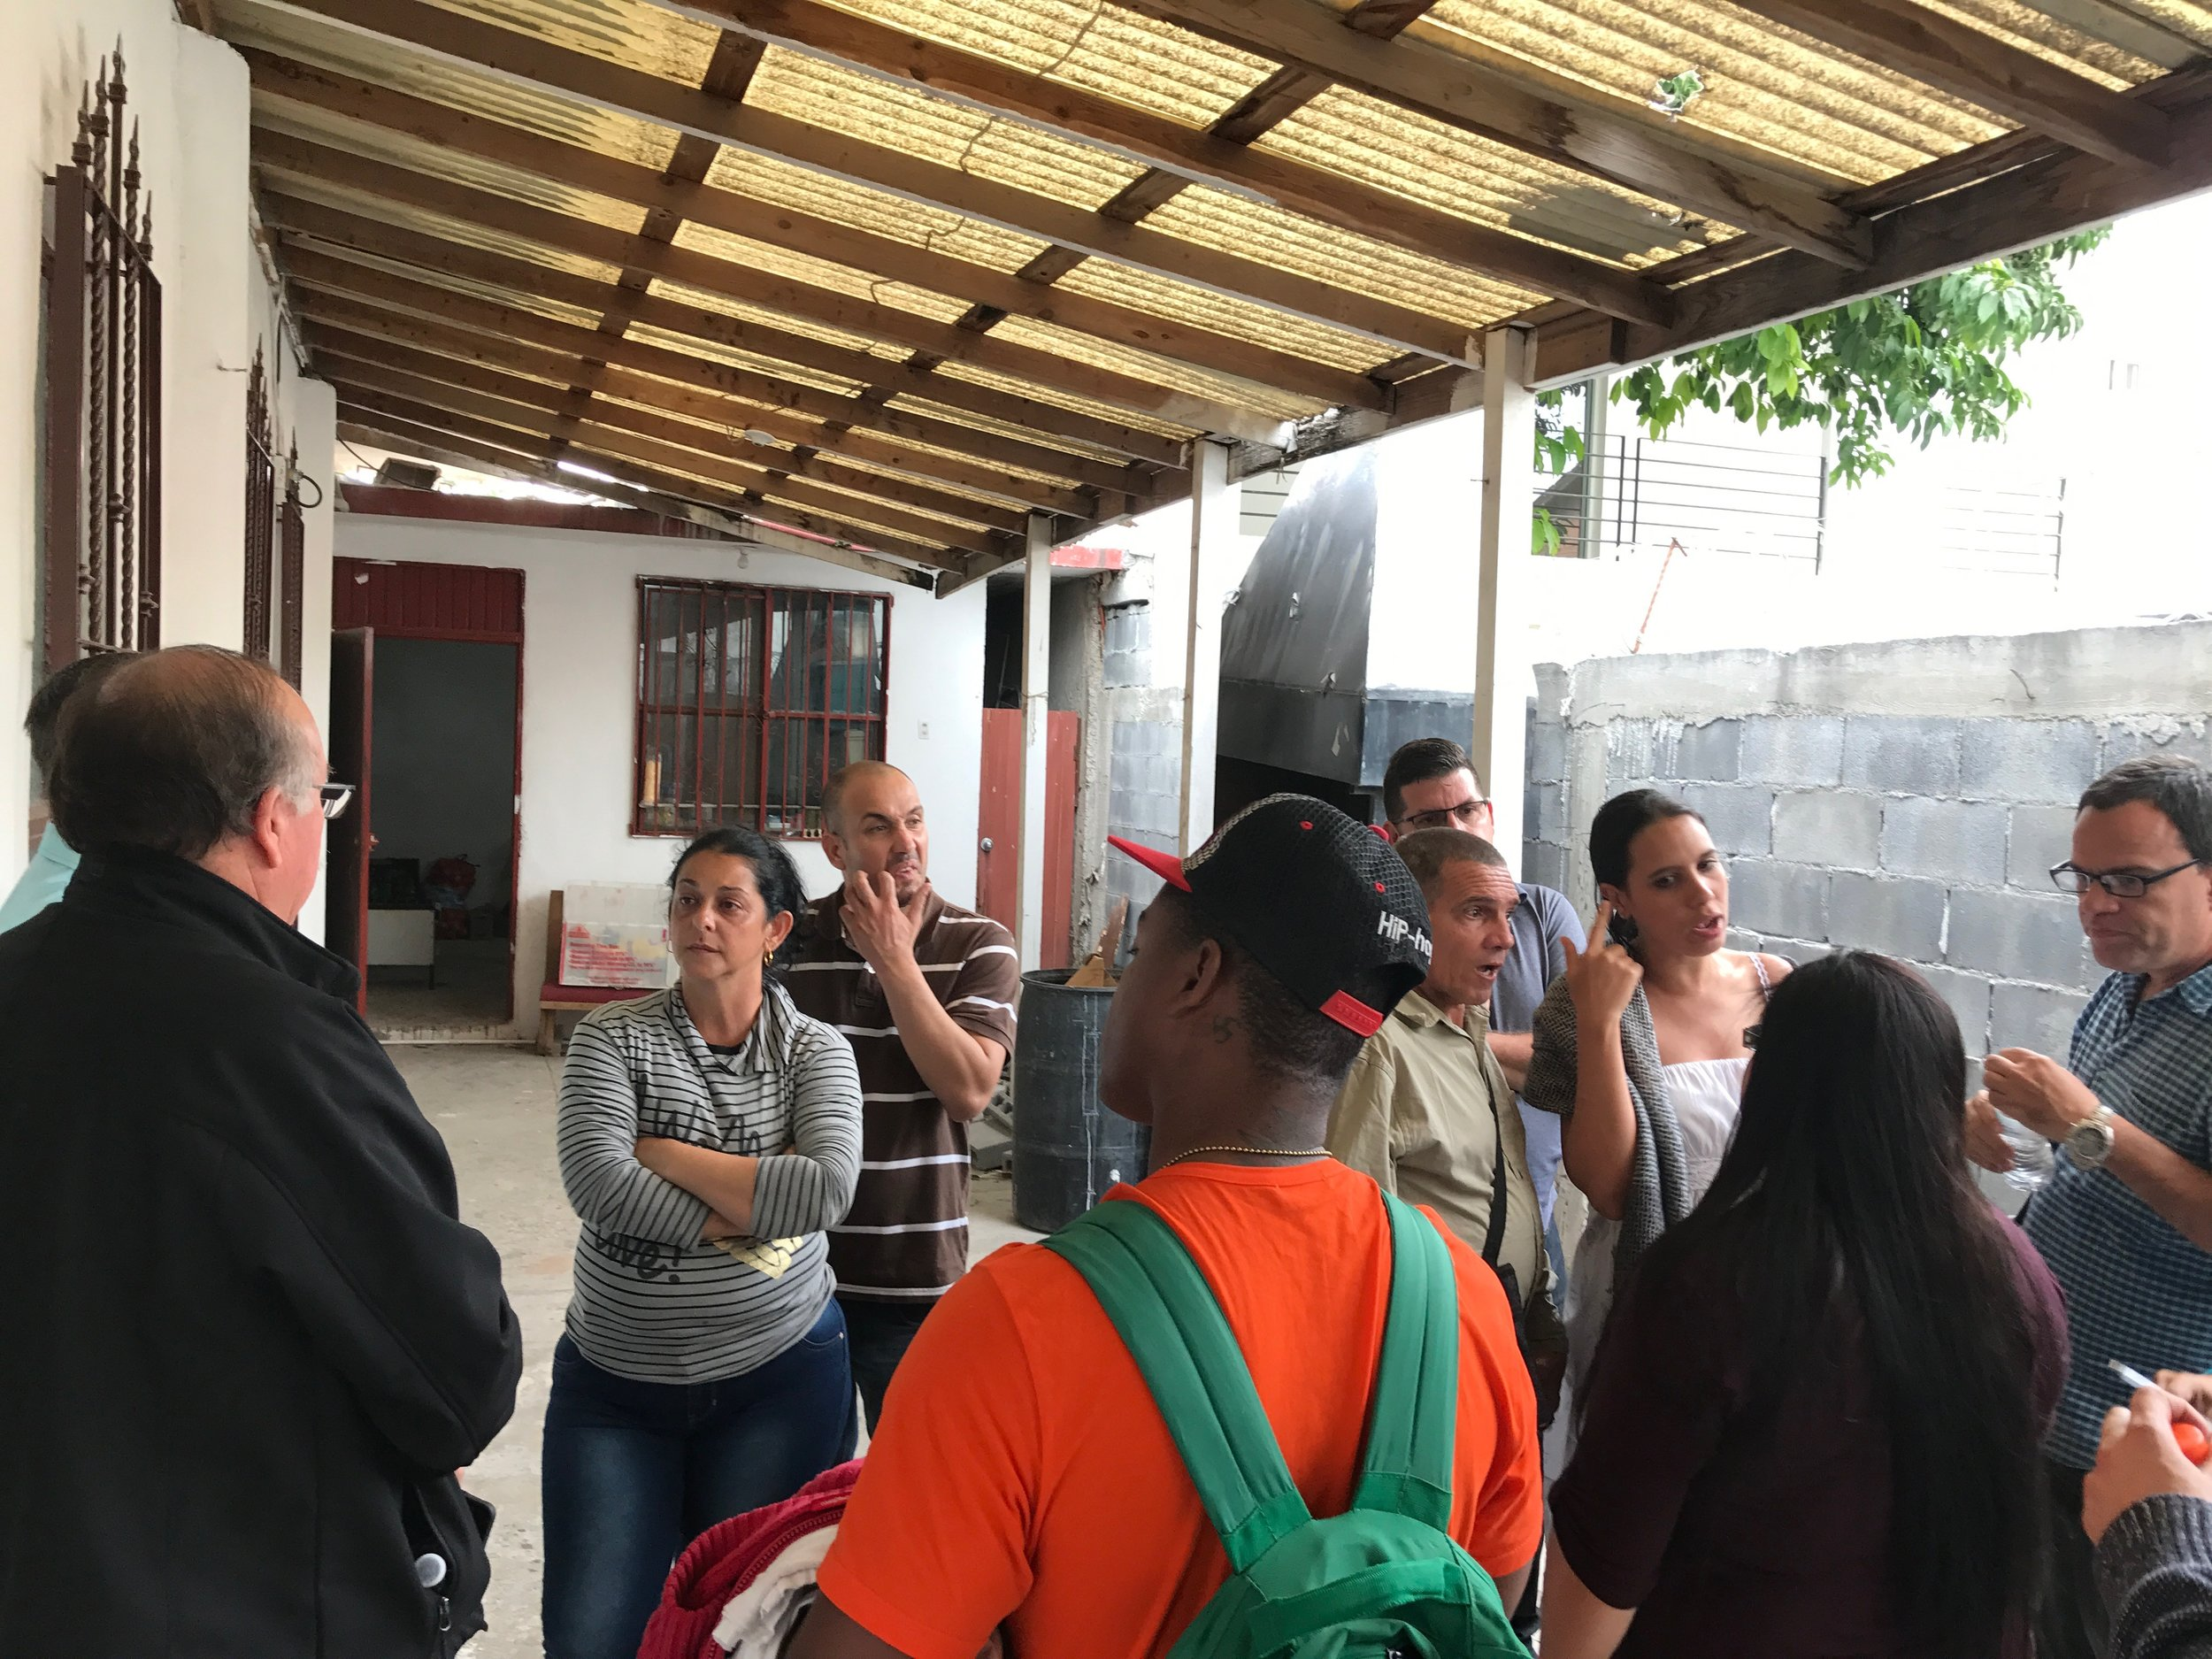 After unloading supplies at the church, the Cuban migrant community and Methodist and Baptists discuss the day's activities. After this activity, some of the group went to visit with the local immigration and refugee services office to gain insight on their situation from the Mexican government's standpoint.